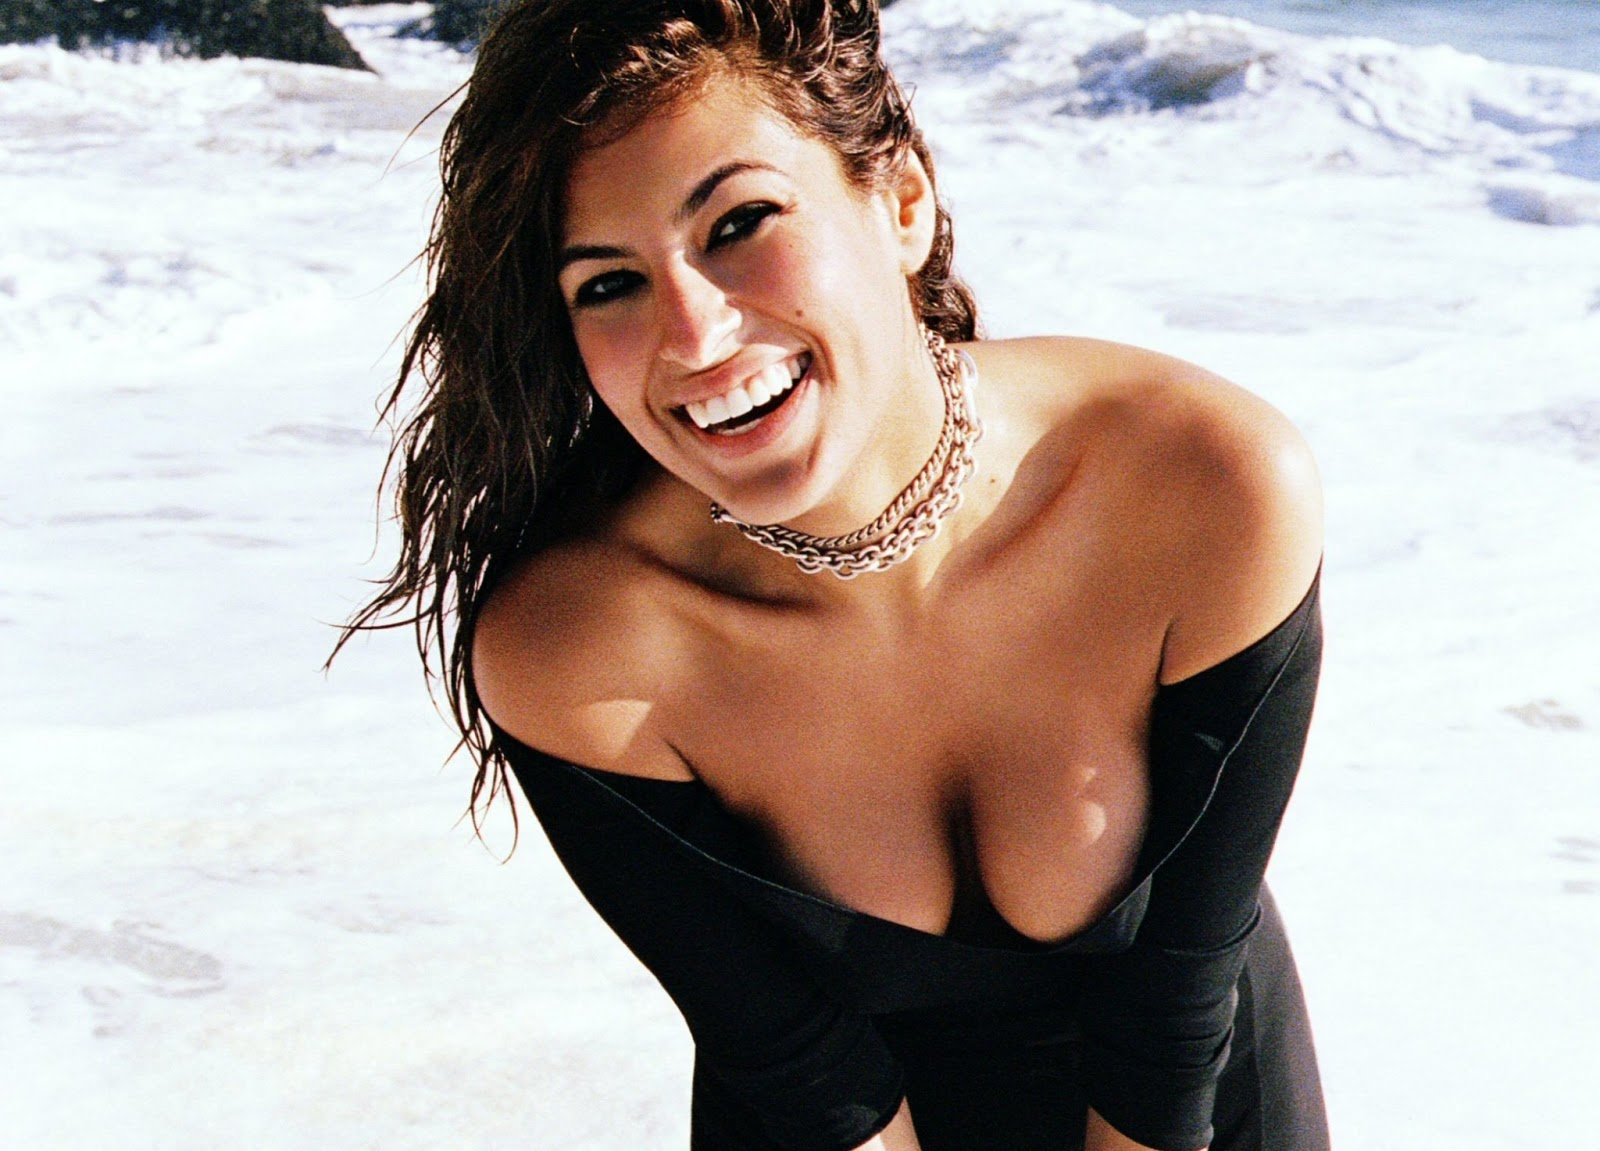 Eva Mendes hot hd wallpapers - HIGH RESOLUTION PICTURES